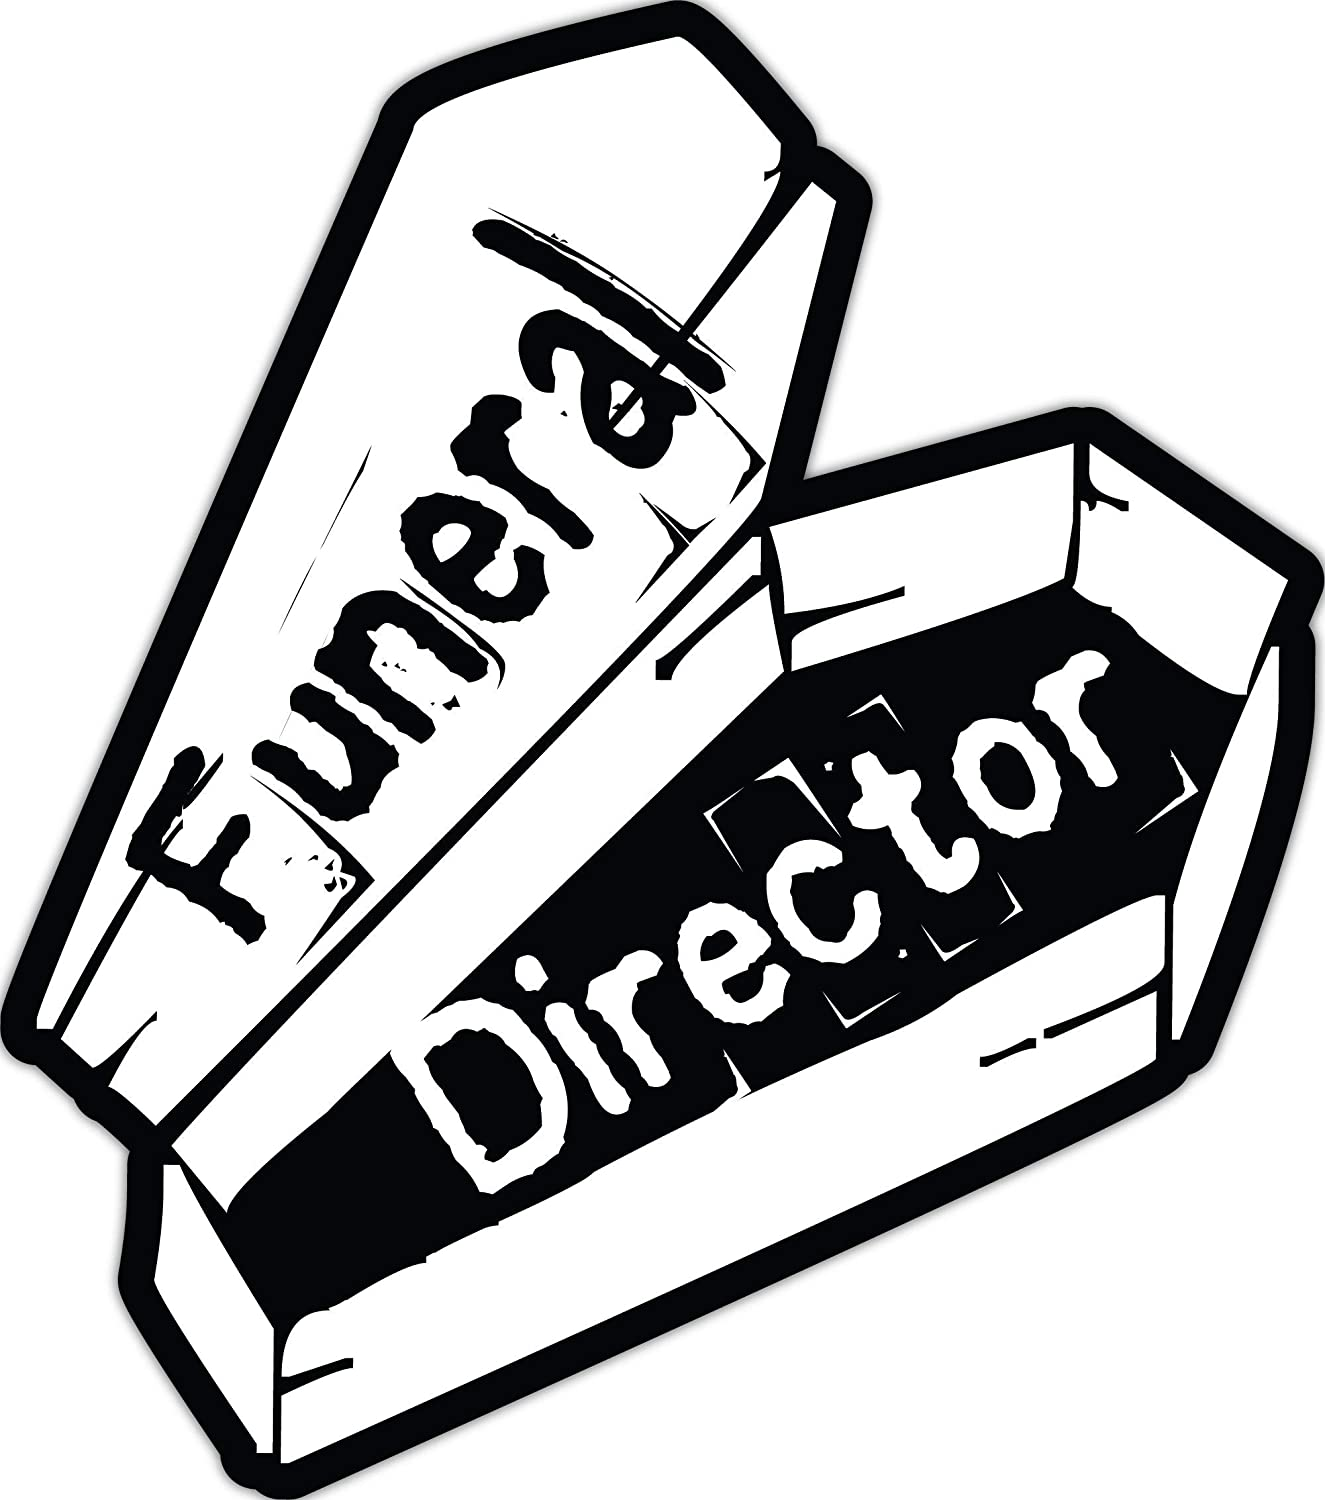 4 All Times Funeral Director Automotive Car Decal for Cars, Trucks, Laptops (15.9